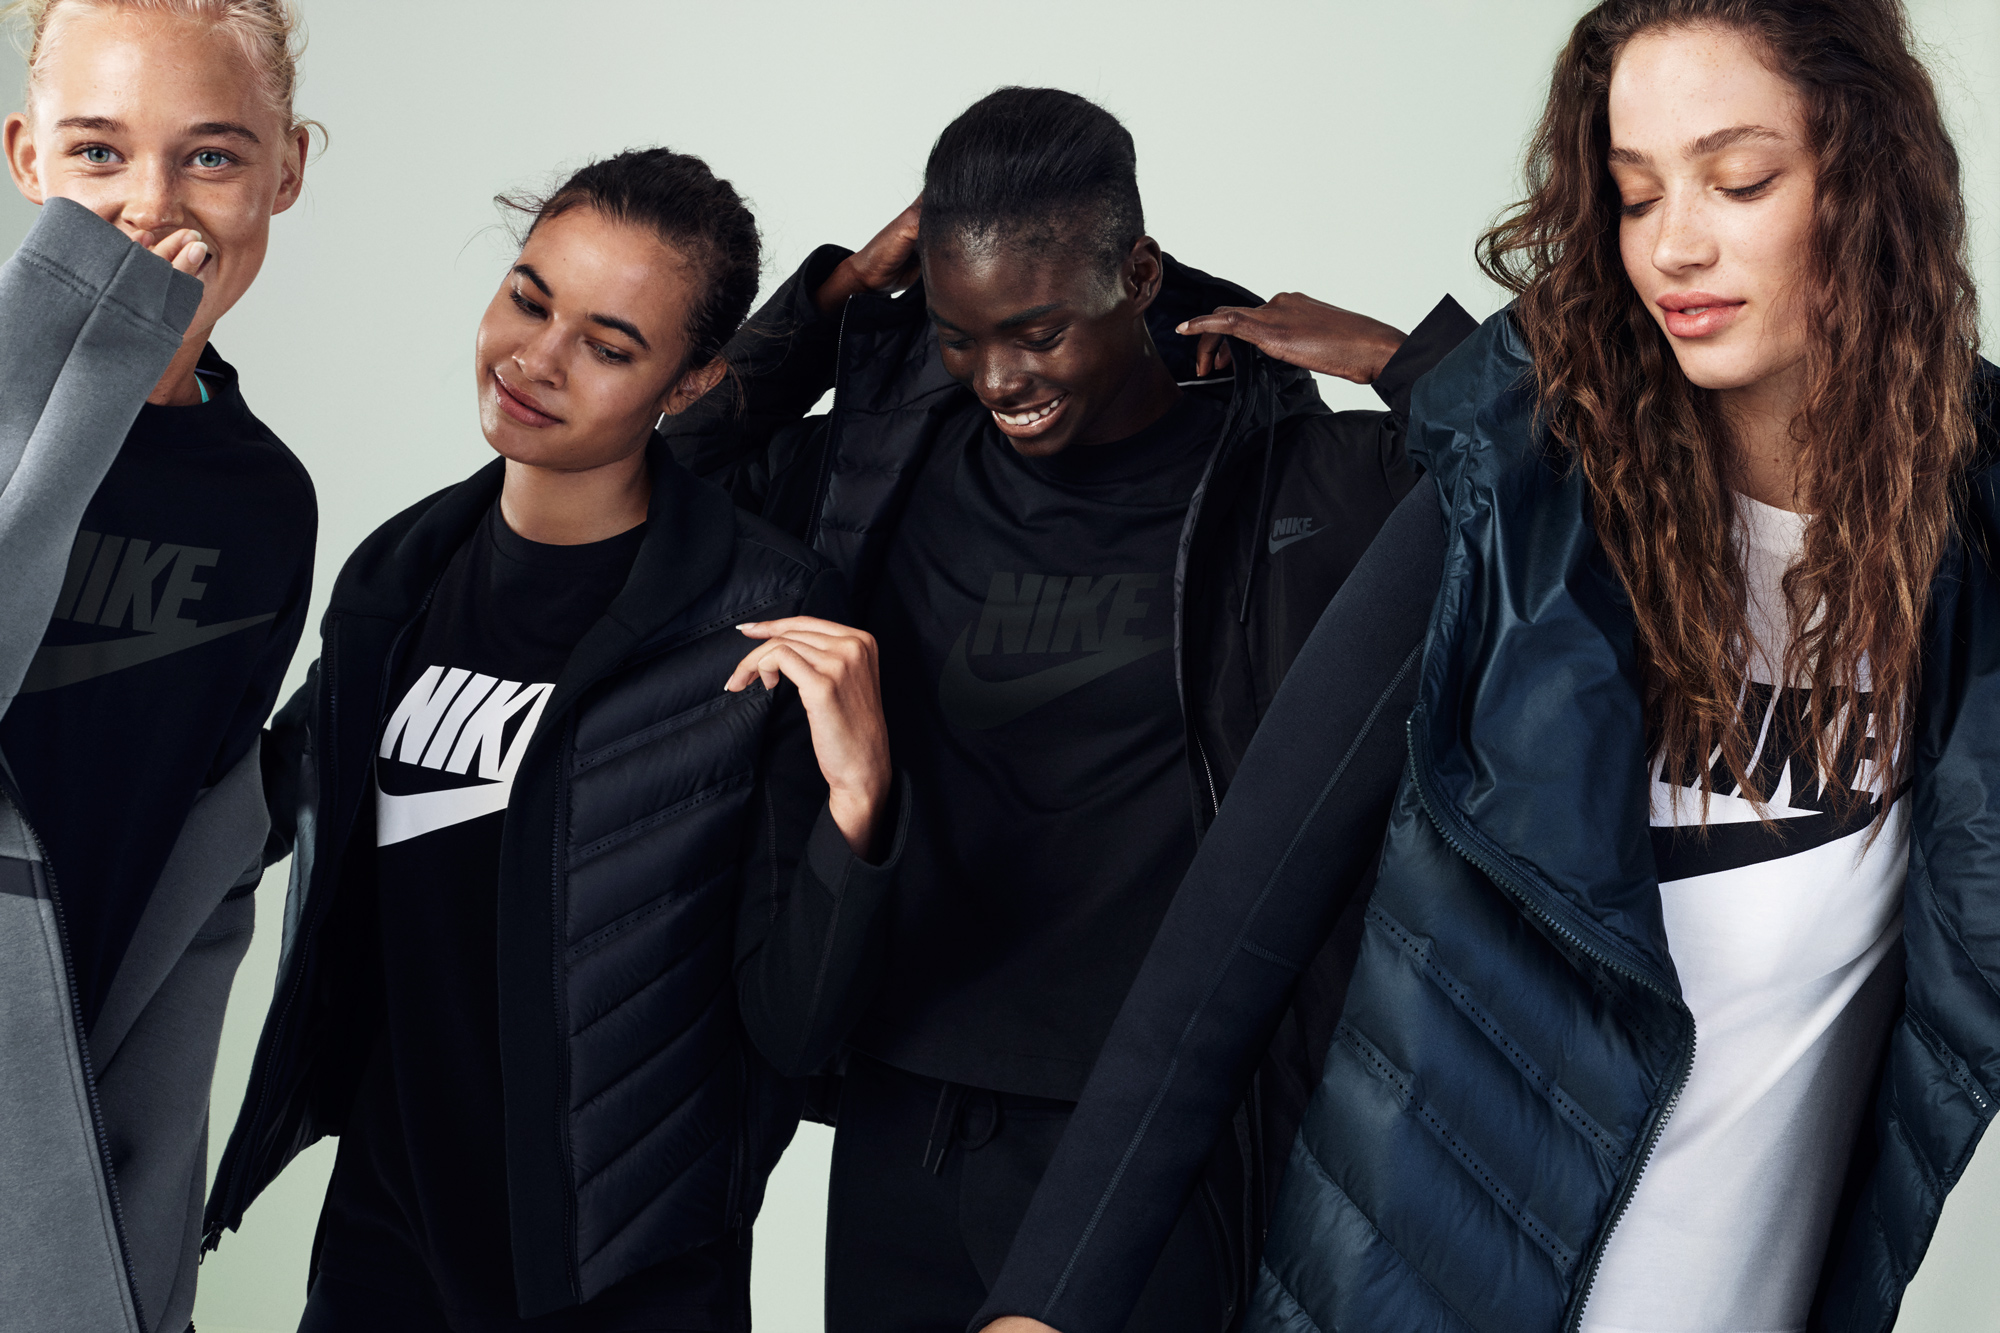 Nike Would Like To Invite You On Sunday December 11 Before Hours From 9 11am Enjoy An Exclusive Experience And The Latest Nikewomen